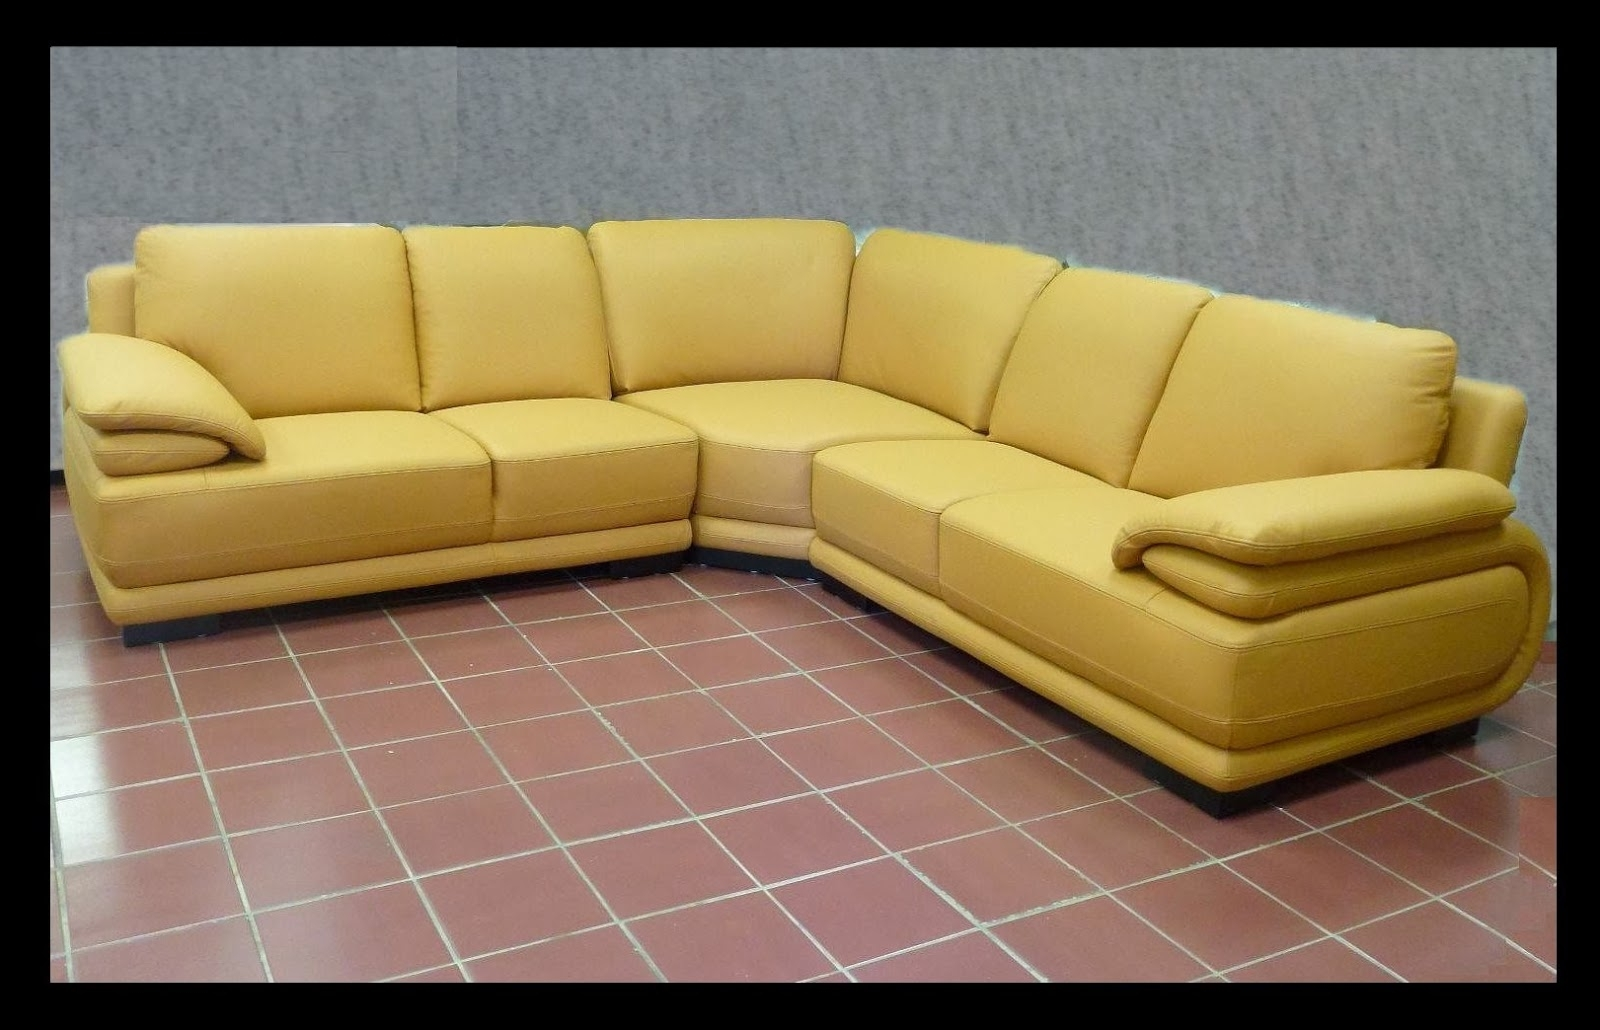 Recent Ebay Sofa Sets For Sale Second Hand 2 Seater Leather Sofa Used Within Sectional Sofas At Ebay (View 20 of 20)